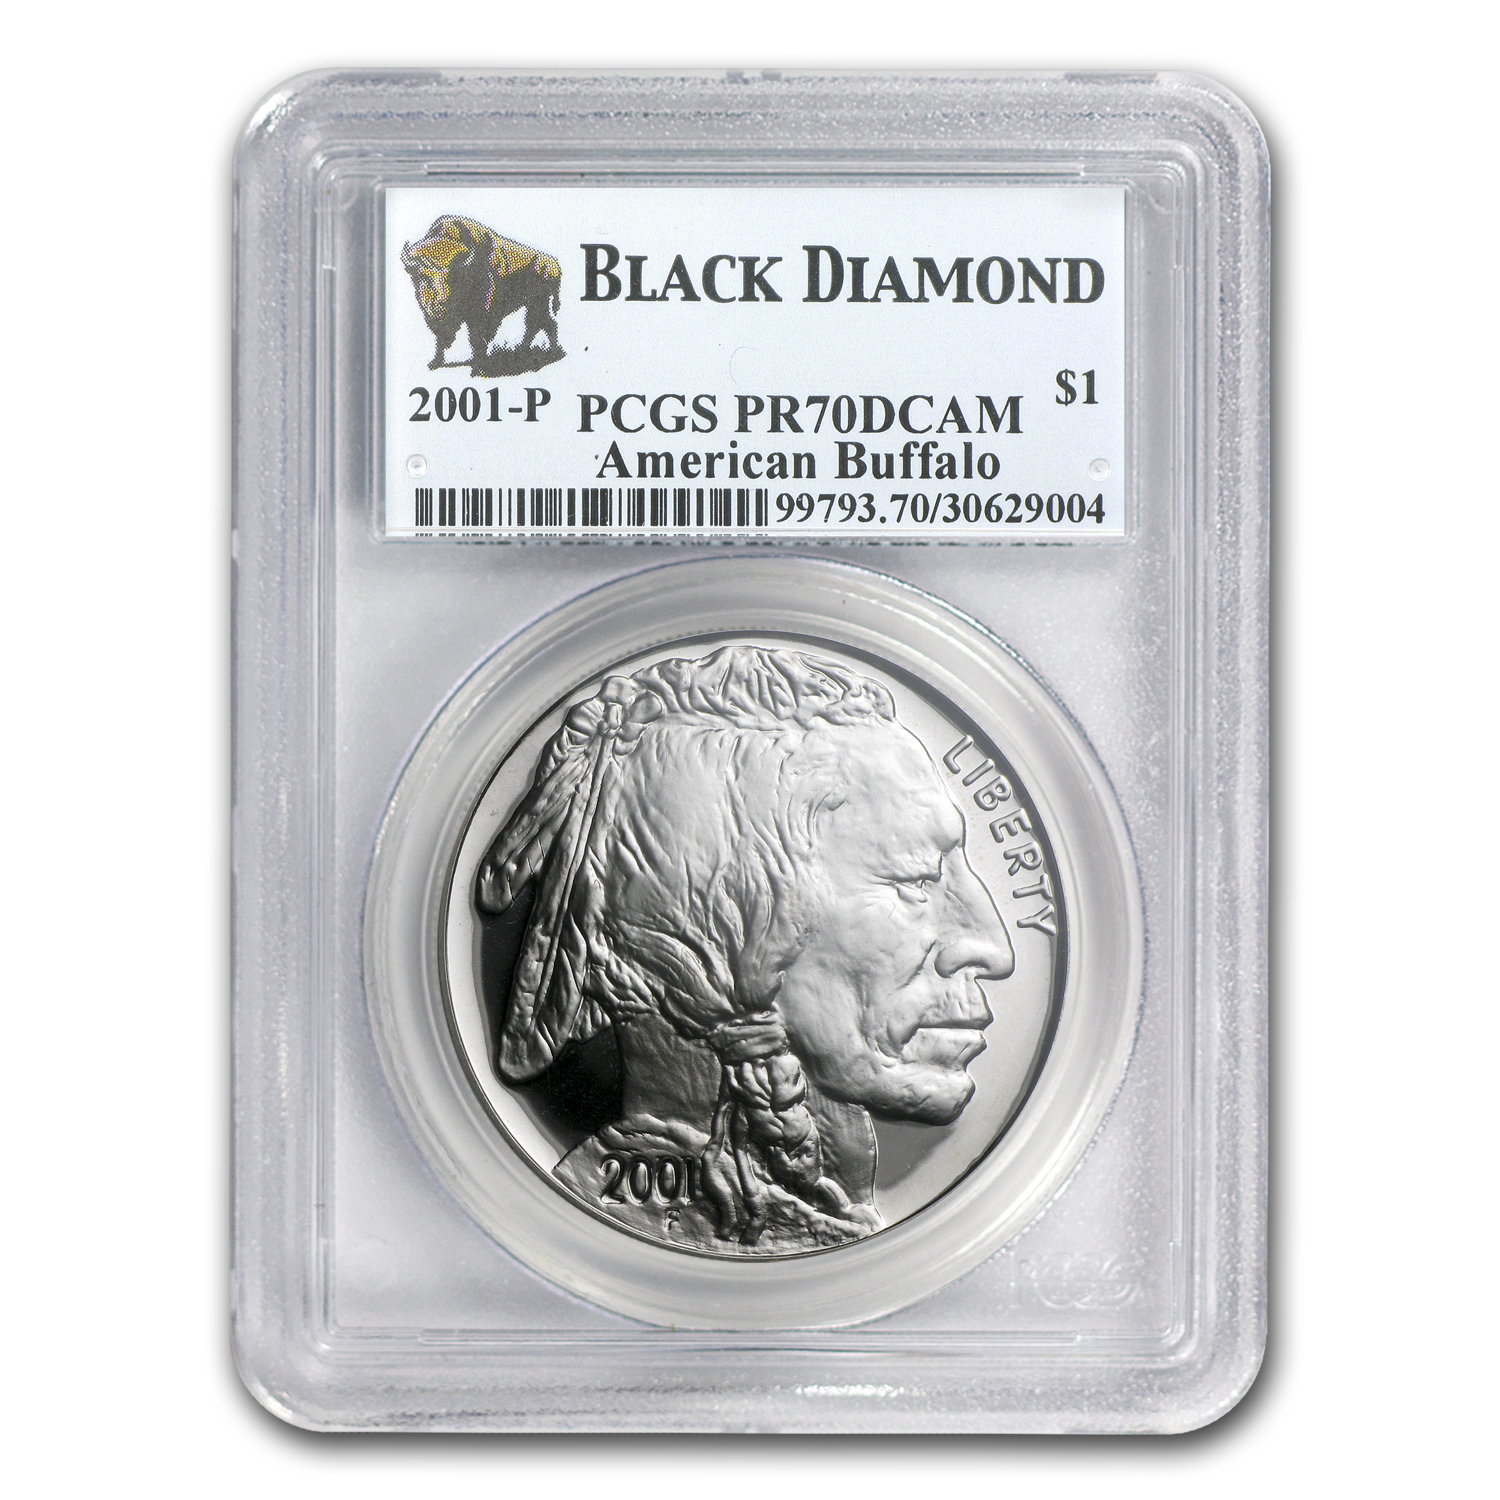 2001-P Buffalo Black Diamond $1 Silver Commem PR-70 PCGS